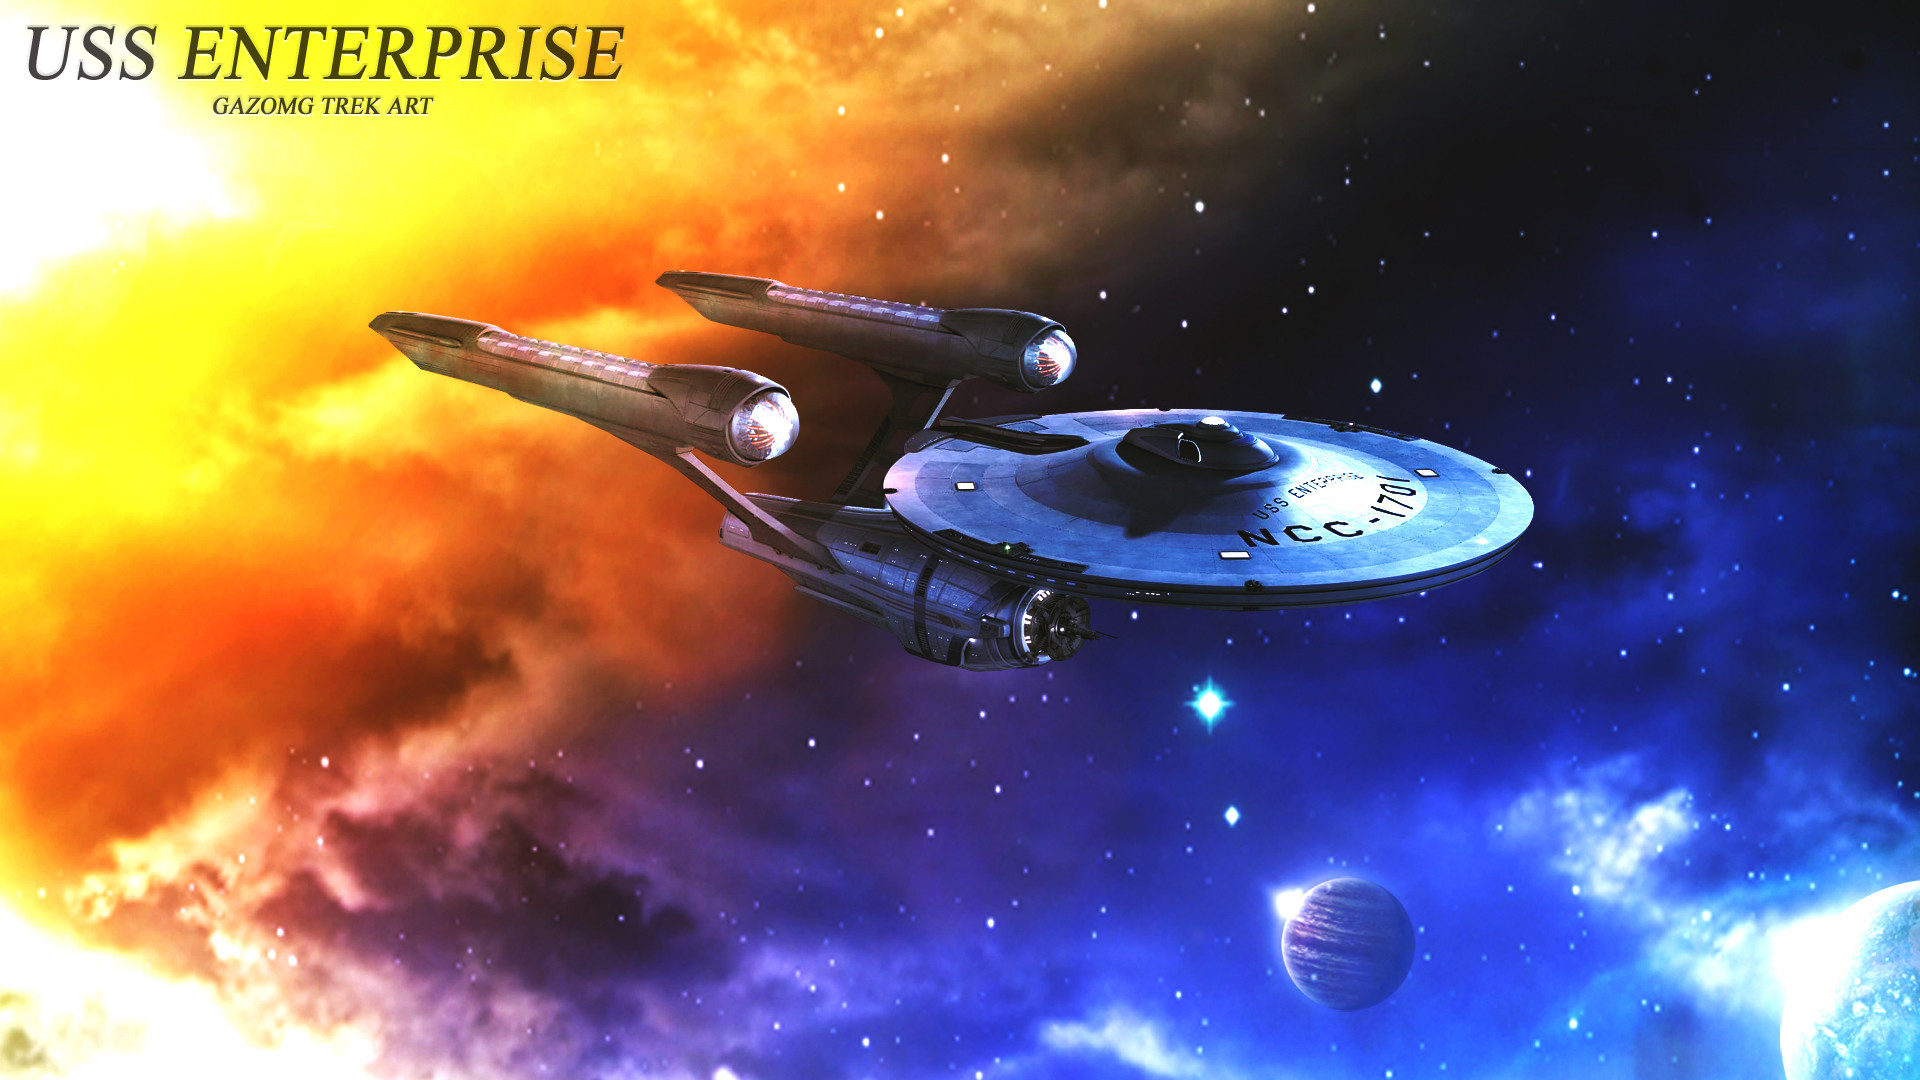 1920x1080 ... USS Enterprise Alternate Star Trek Wallpaper by gazomg